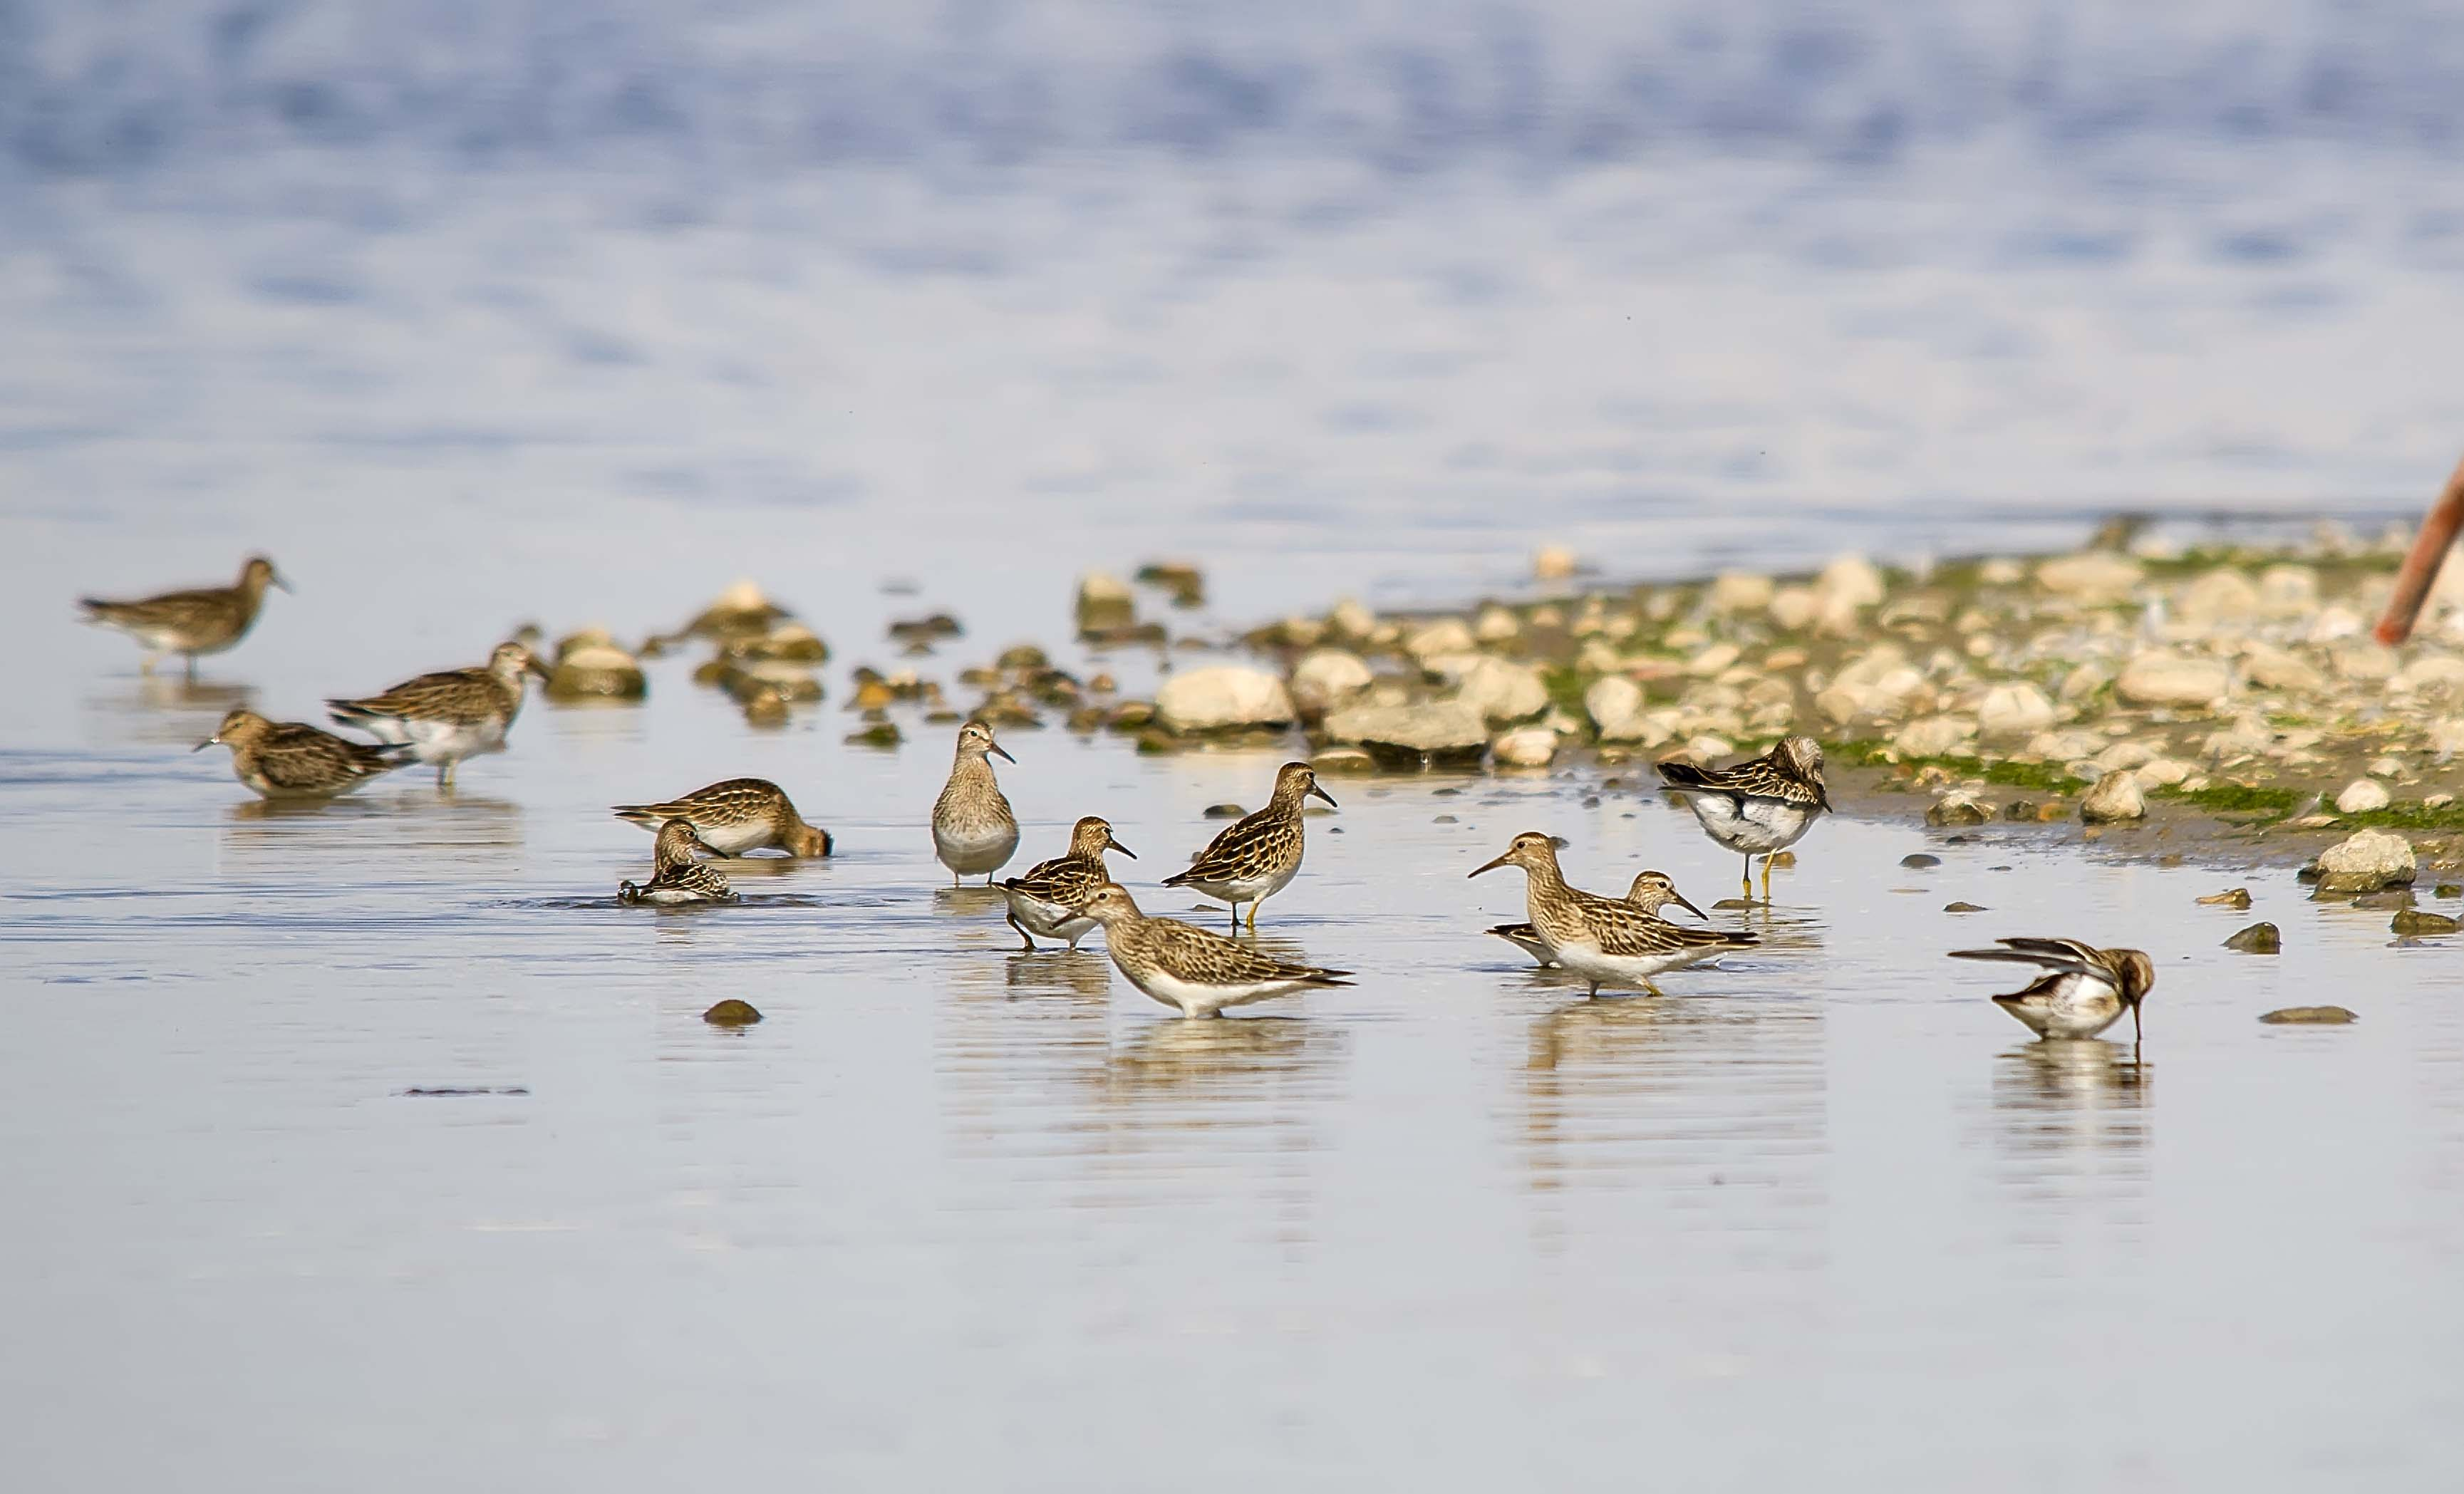 Pectoral Sandpipers - Weed Lake, AB, September 2012